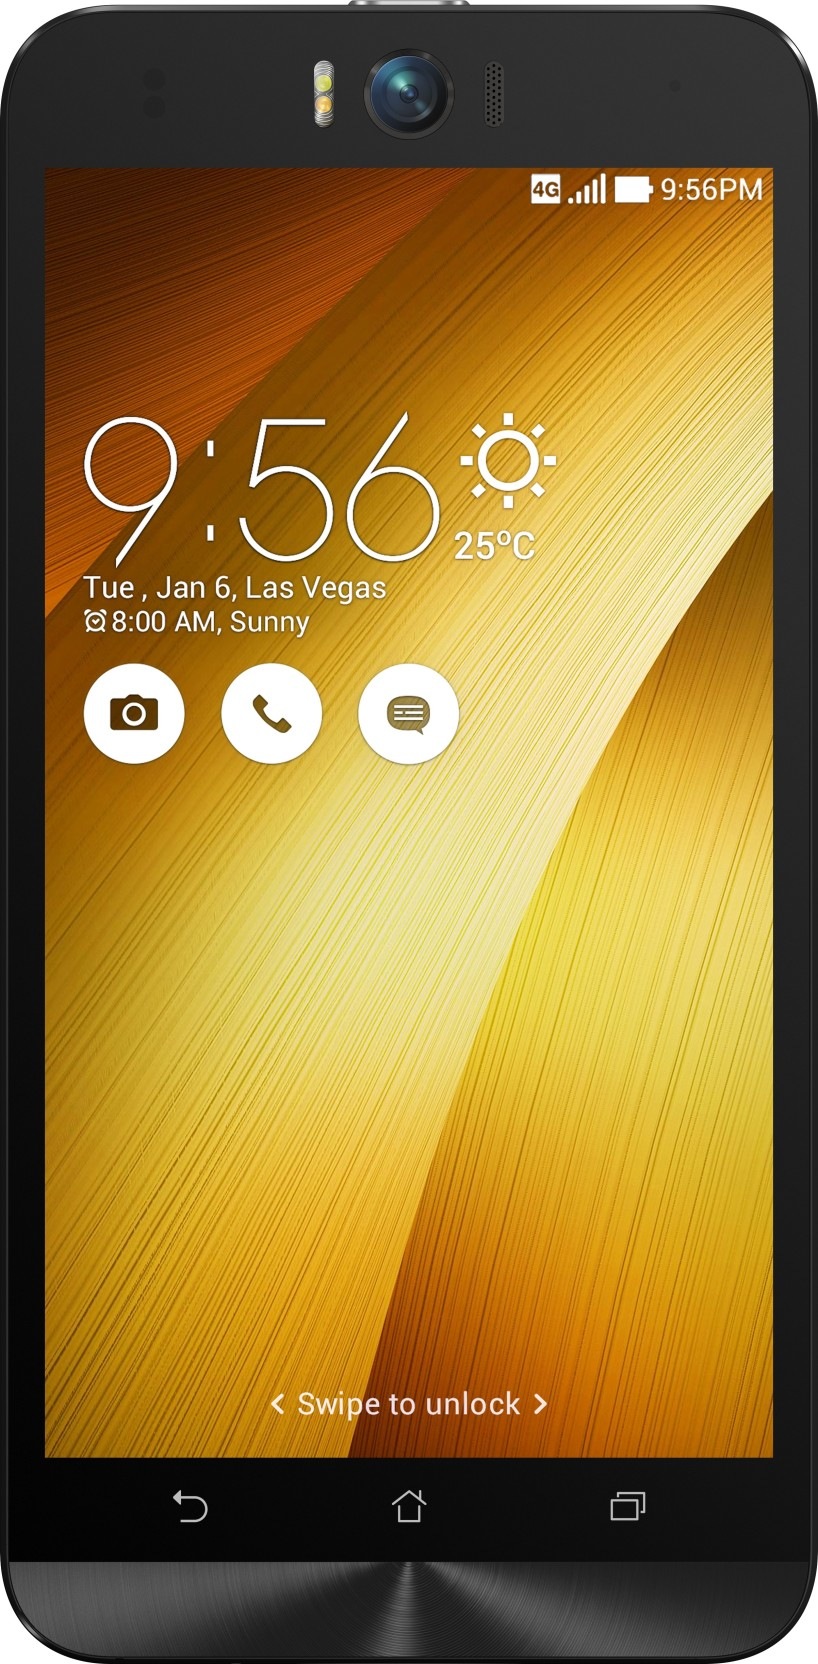 Asus Zenfone Selfie Gold 32 Gb Online At Best Price Only On Selfi Zd551kl 4g Lte Home